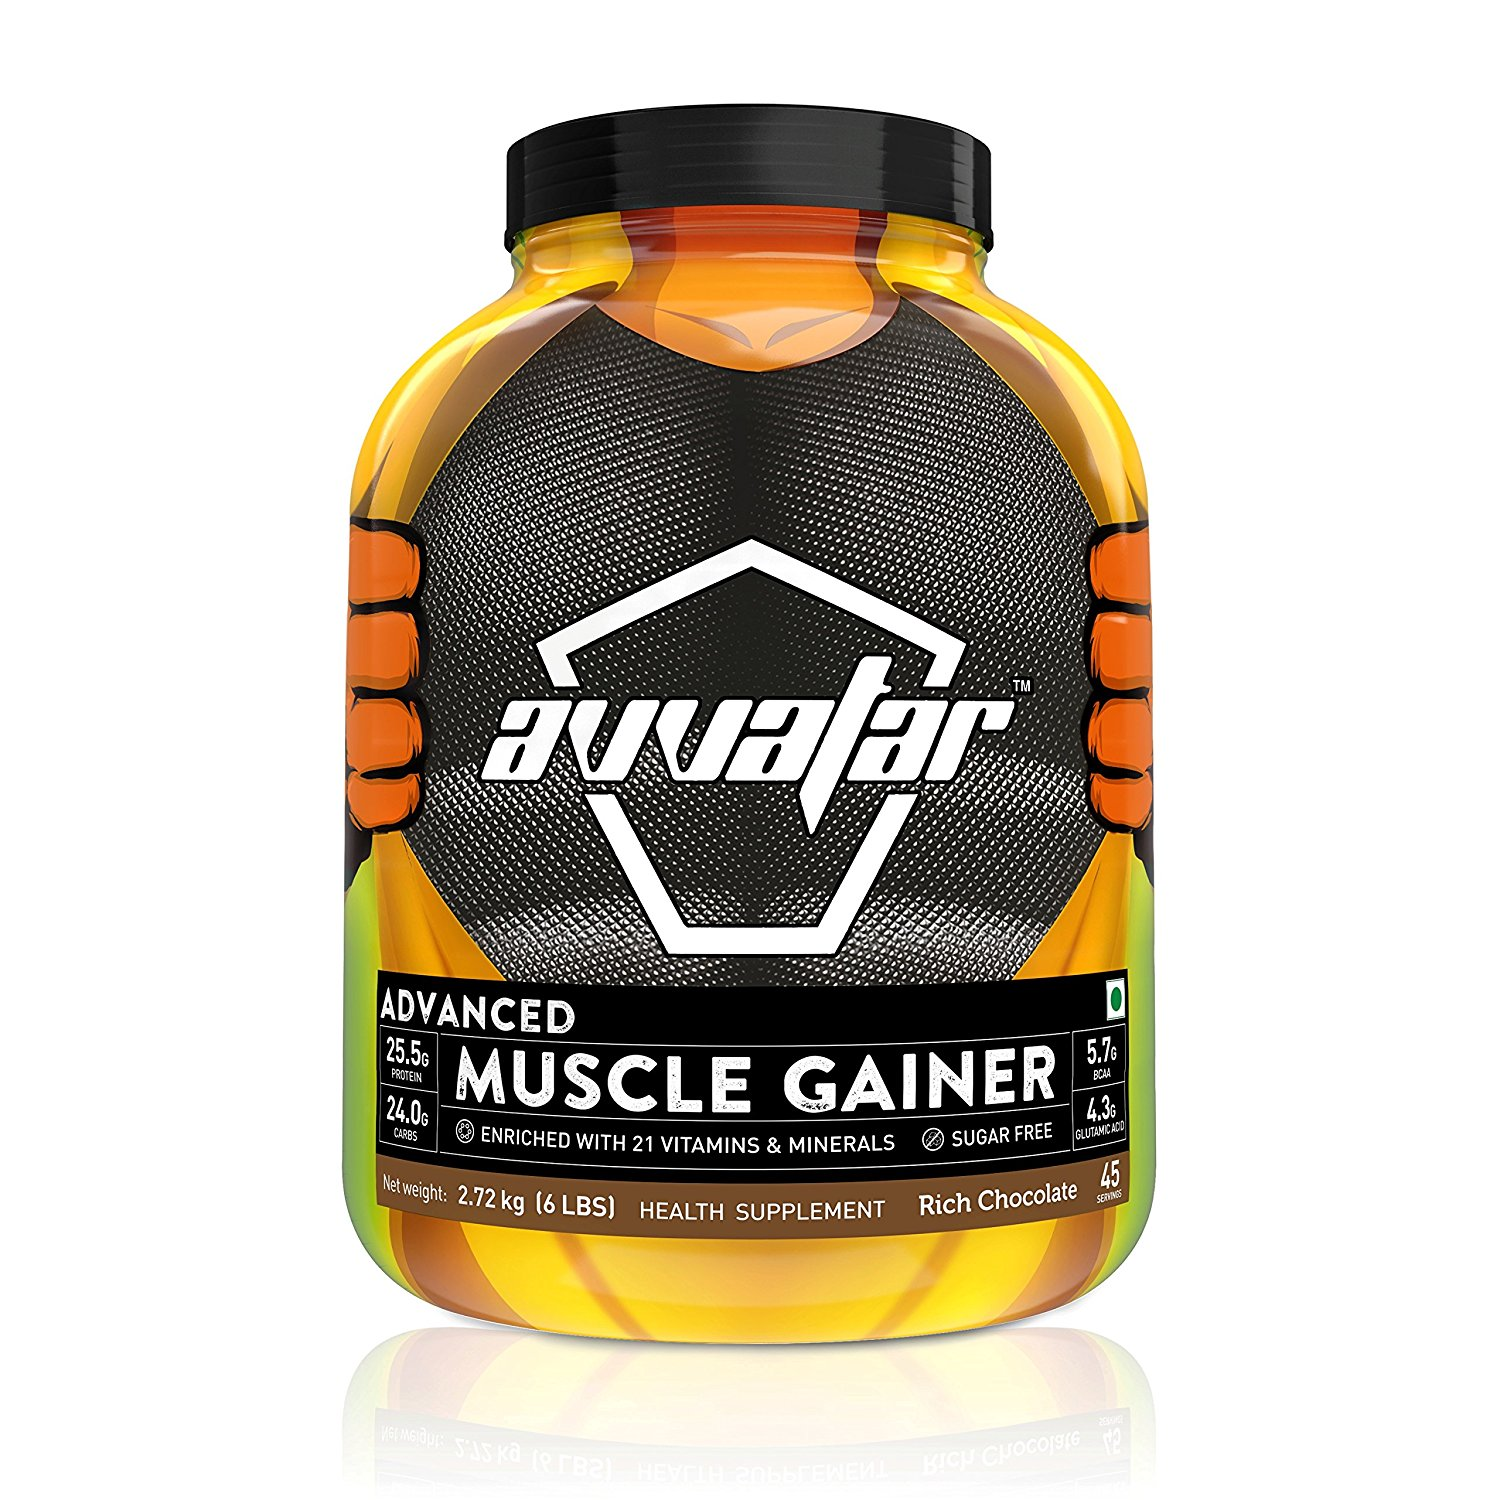 Avvatar-muscle-gainer-1